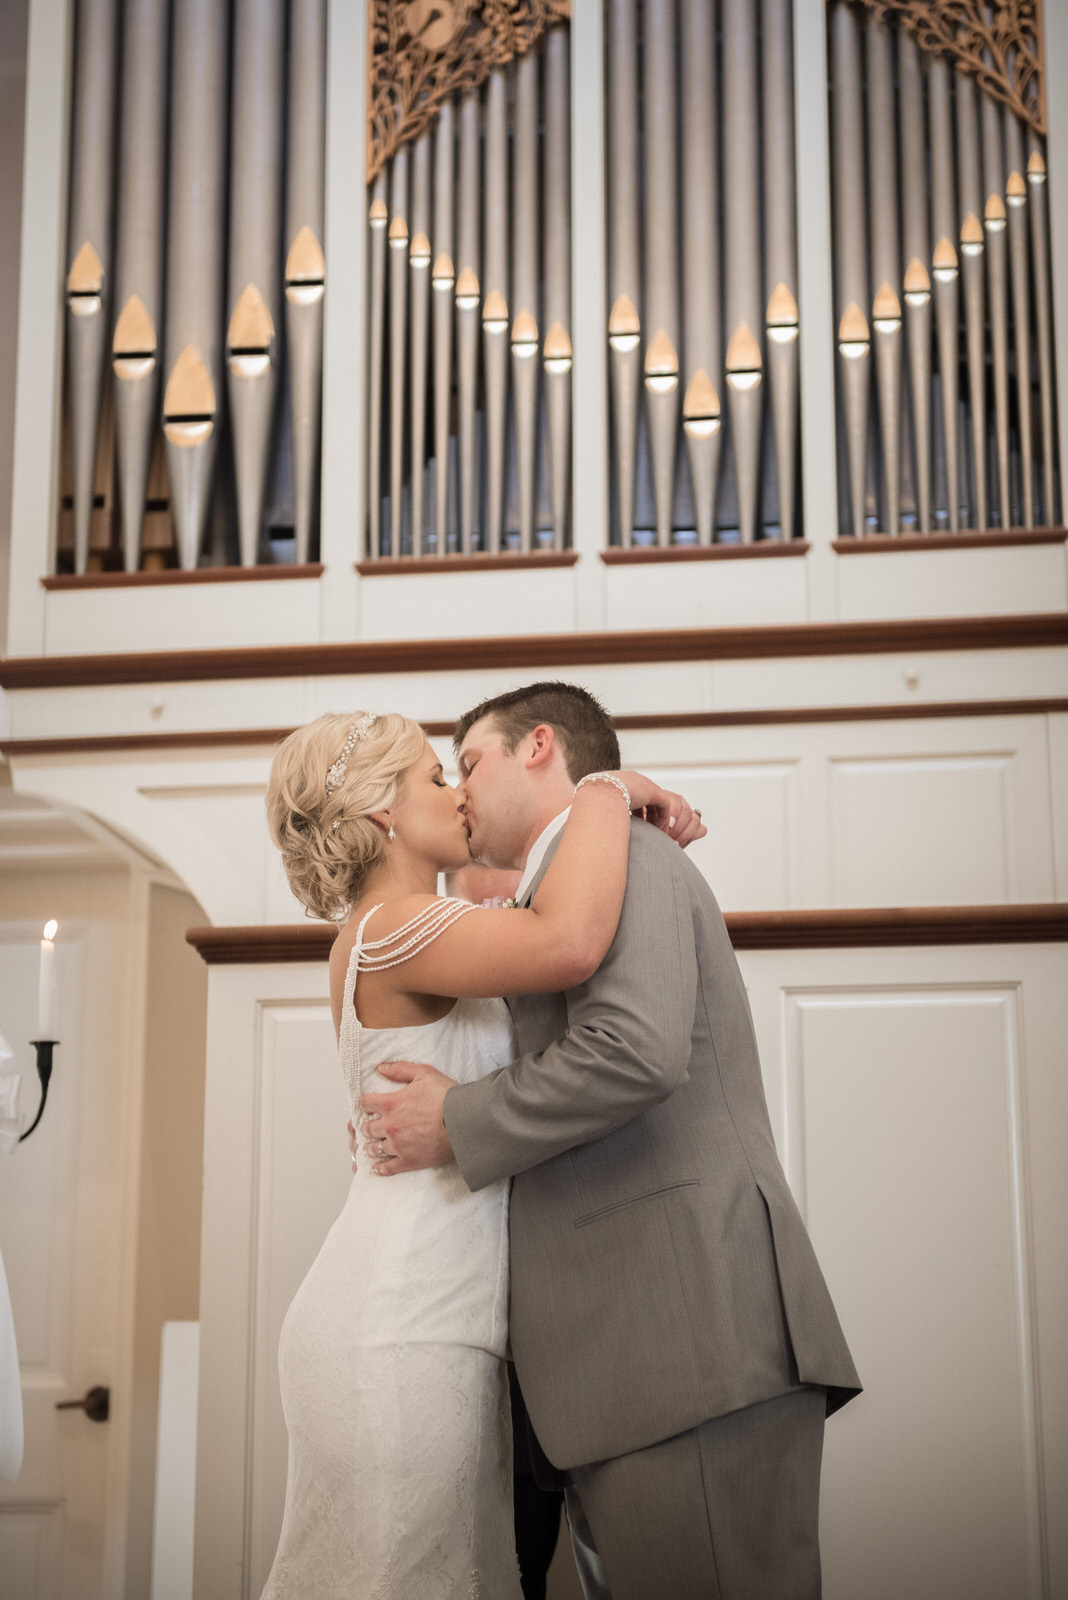 wedding-athens-ohio-photographer-photography-university-walter-hall-galbreath-chapel